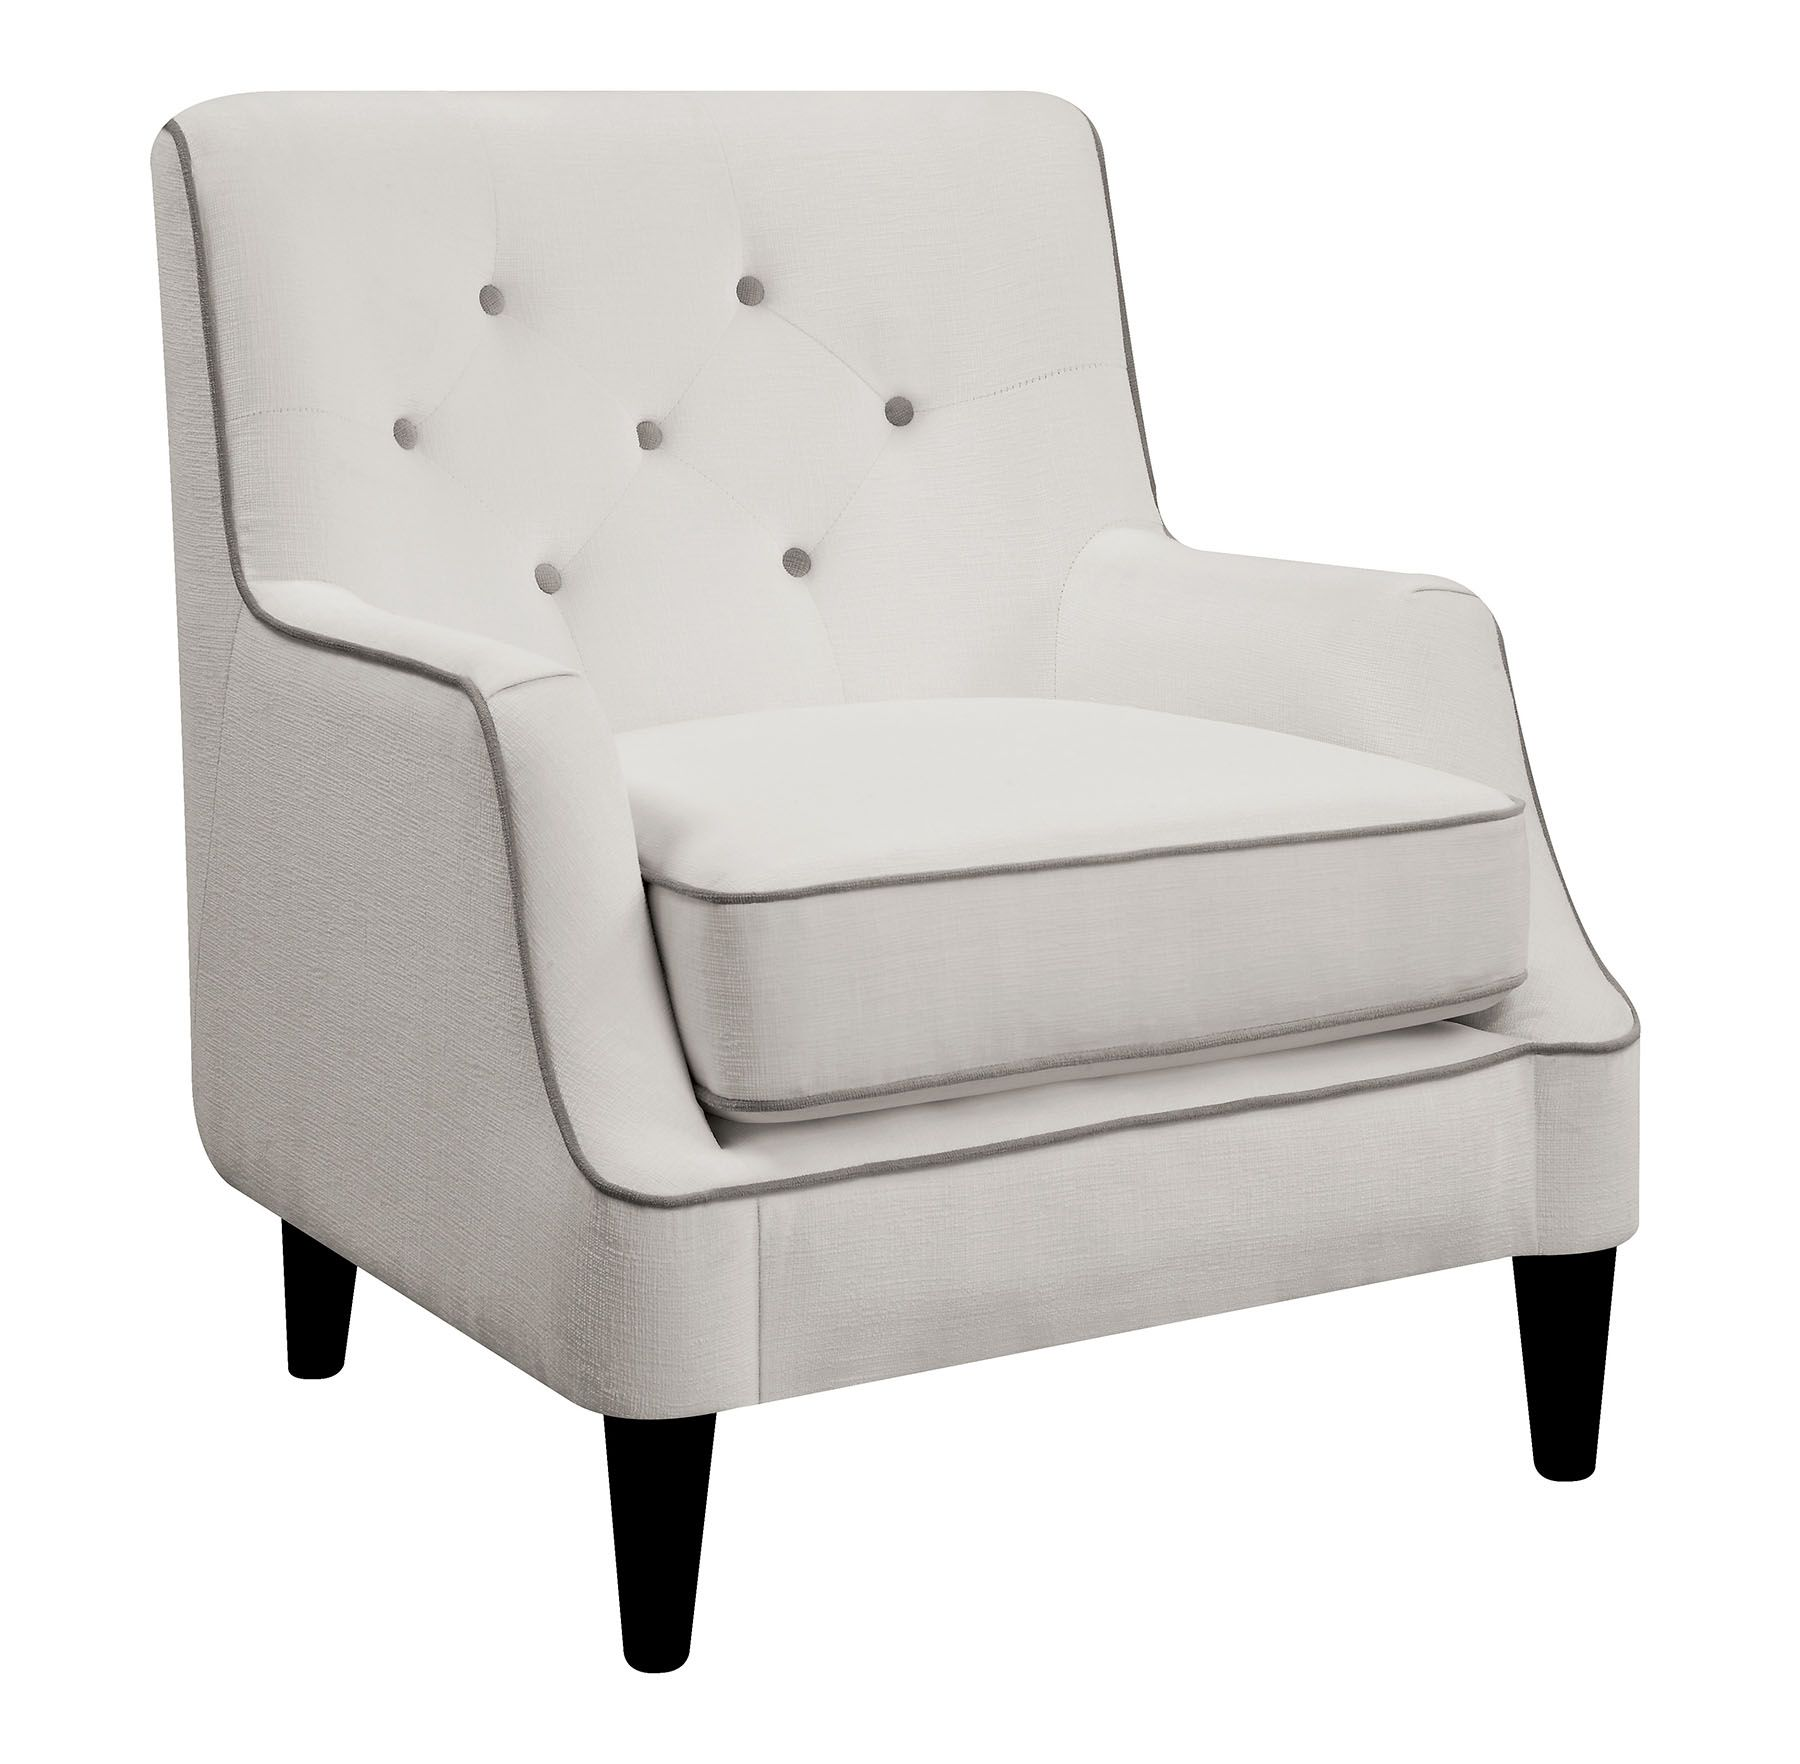 Donny Osmond Home 902895 White And Gray Fabric Accent Chair